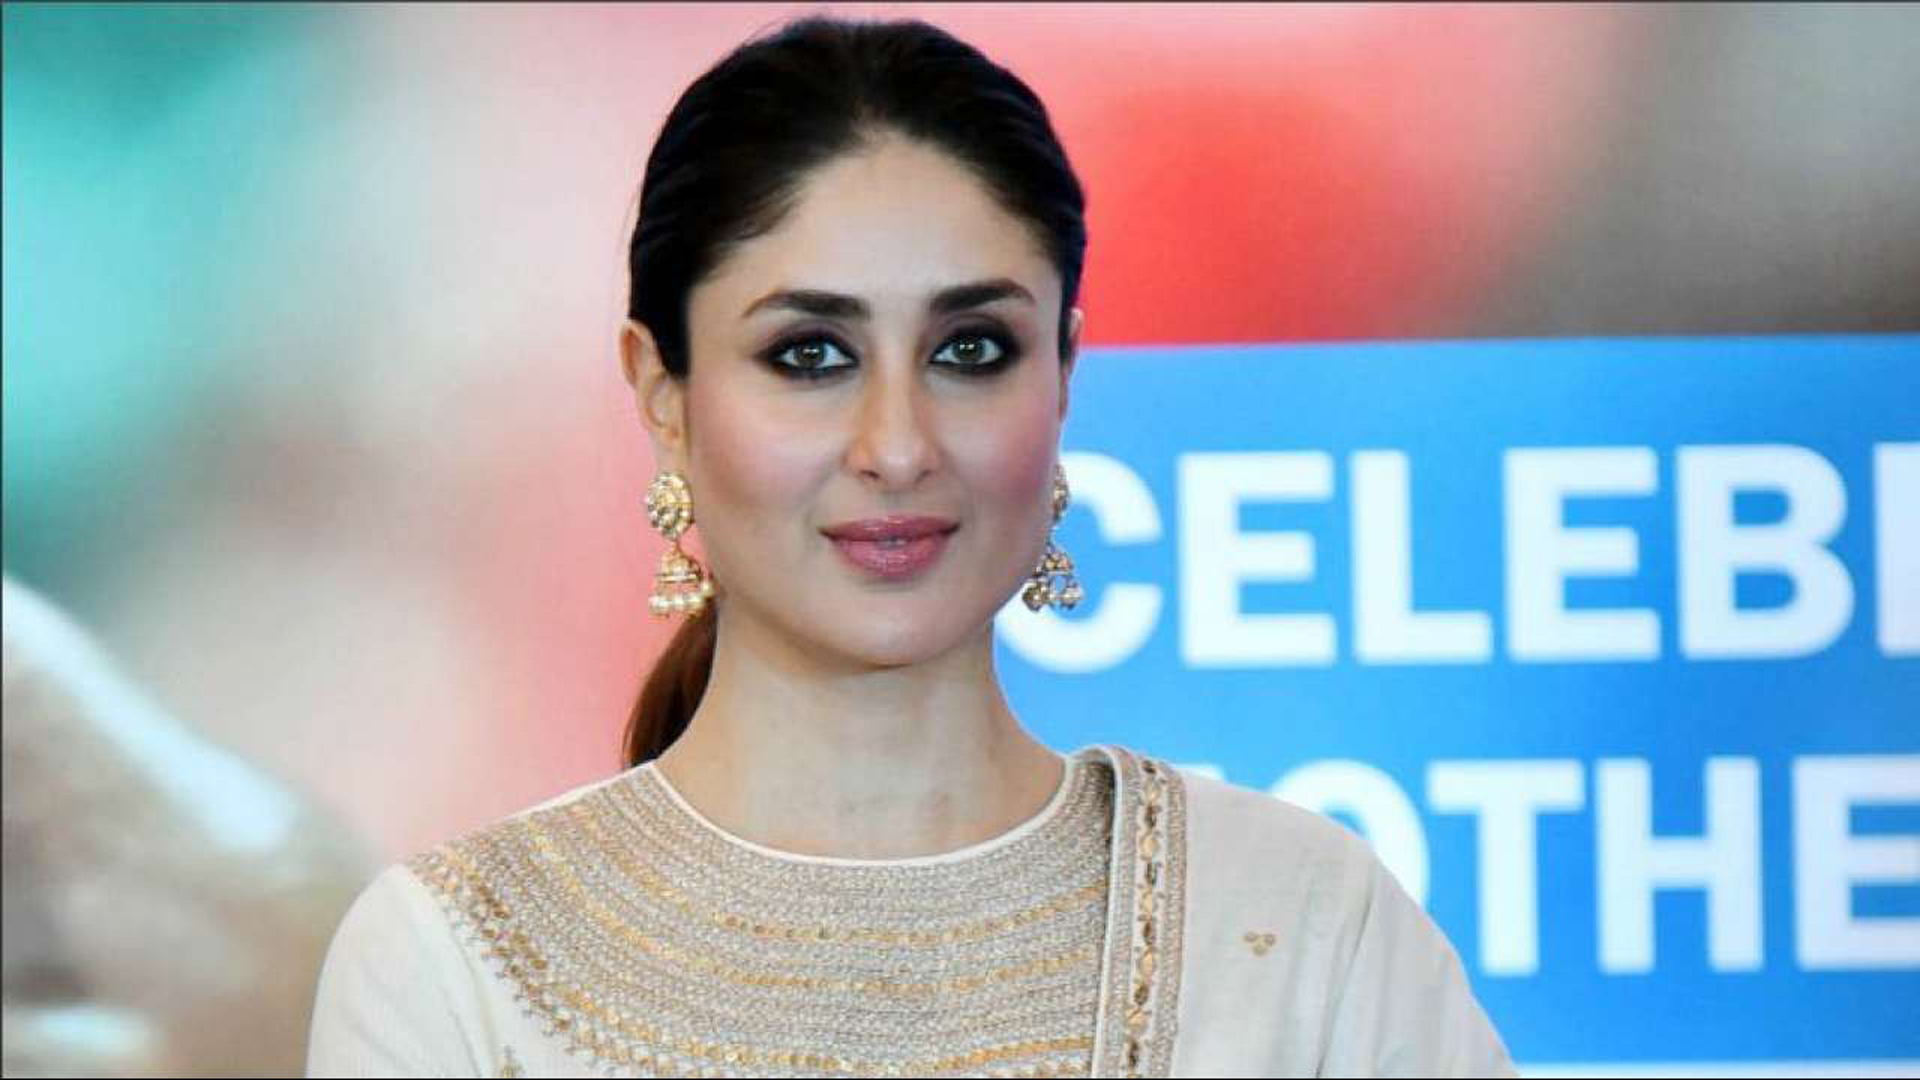 Kareena Kapoor Khan joins fashion designers to support artisans affected due to COVID-19